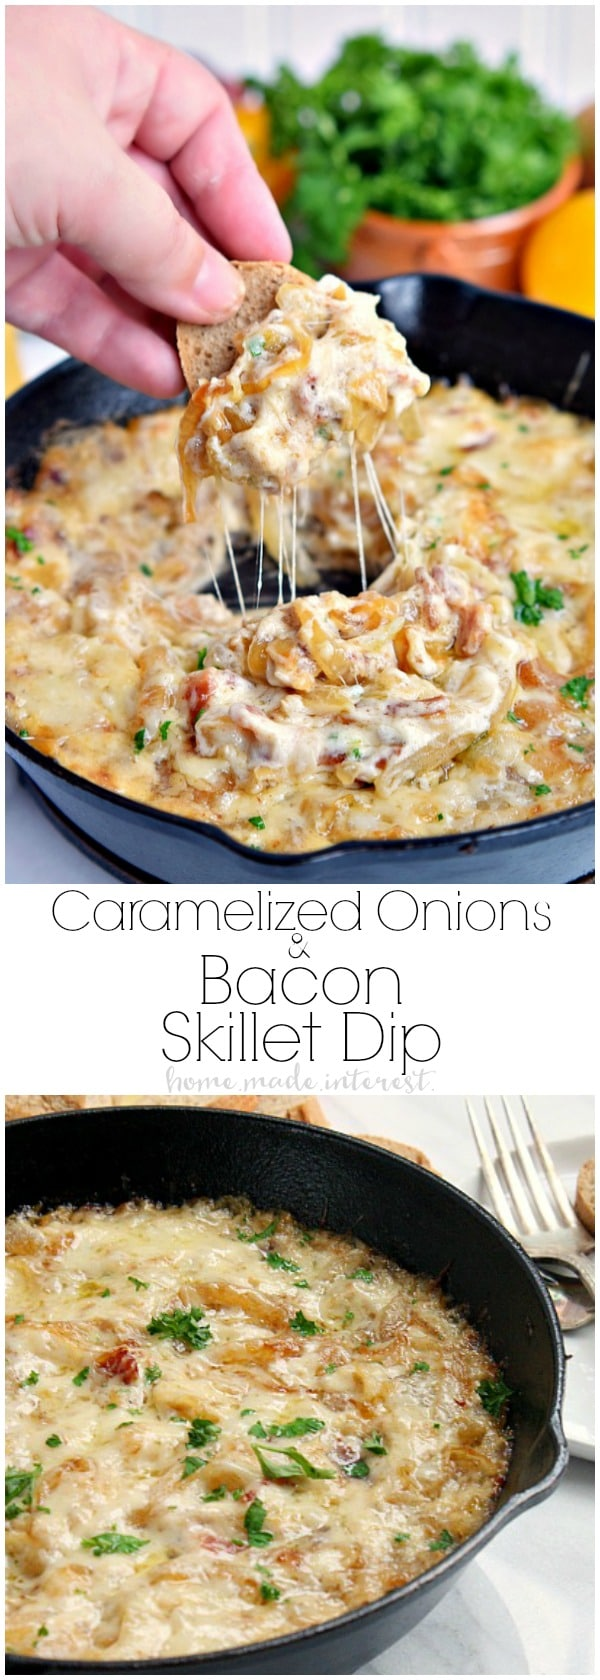 This Caramelized Onion and Bacon Skillet Dip is made with sweet onions, smokey bacon, and lots and lots of cheese! This easy homemade hot dip recipe is made with caramelized onions and baked until perfectly cheesy and gooey. Make this as an appetizer for Christmas or New Year's Eve, or make it for your next game day party, or Super Bowl party! #dip #caramelizedonions #hotdip #footballfood #partyfood #cheese #bacon #homemadeinterest